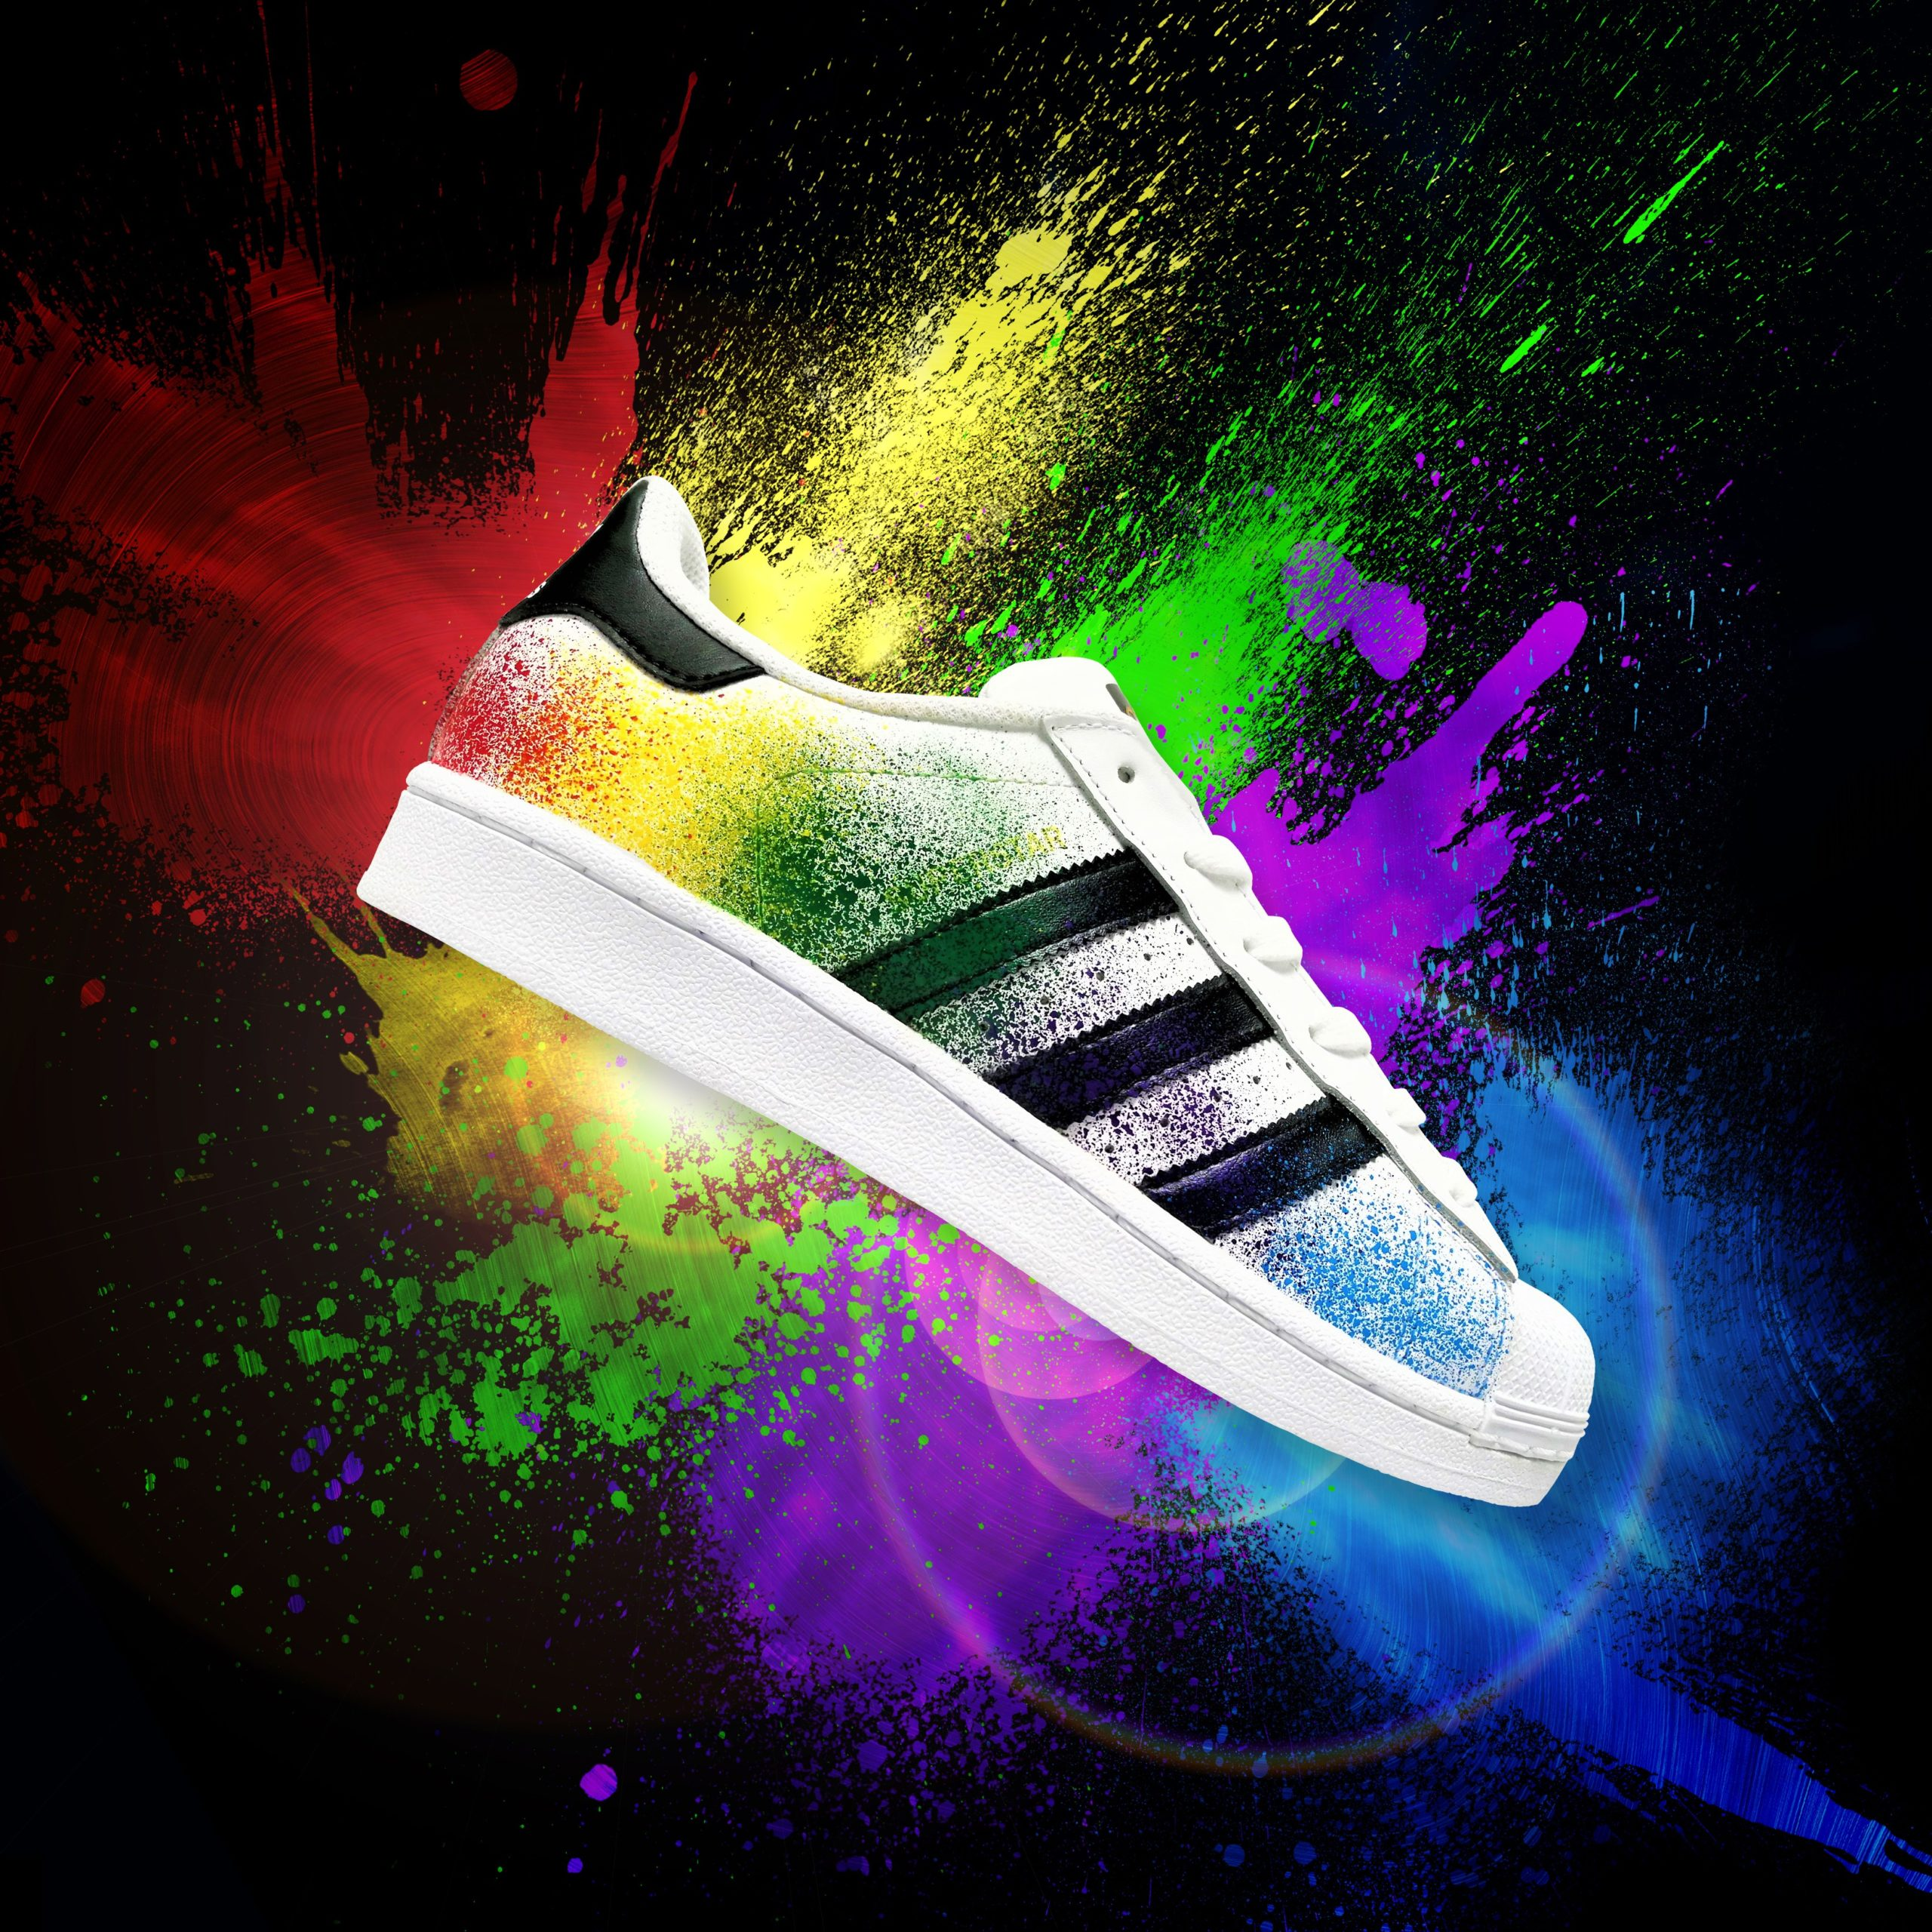 Les Adidas Superstar Color Splash, une paire de sneakers customisée par ATPIK Custom Sneakers avec des Color Splash.